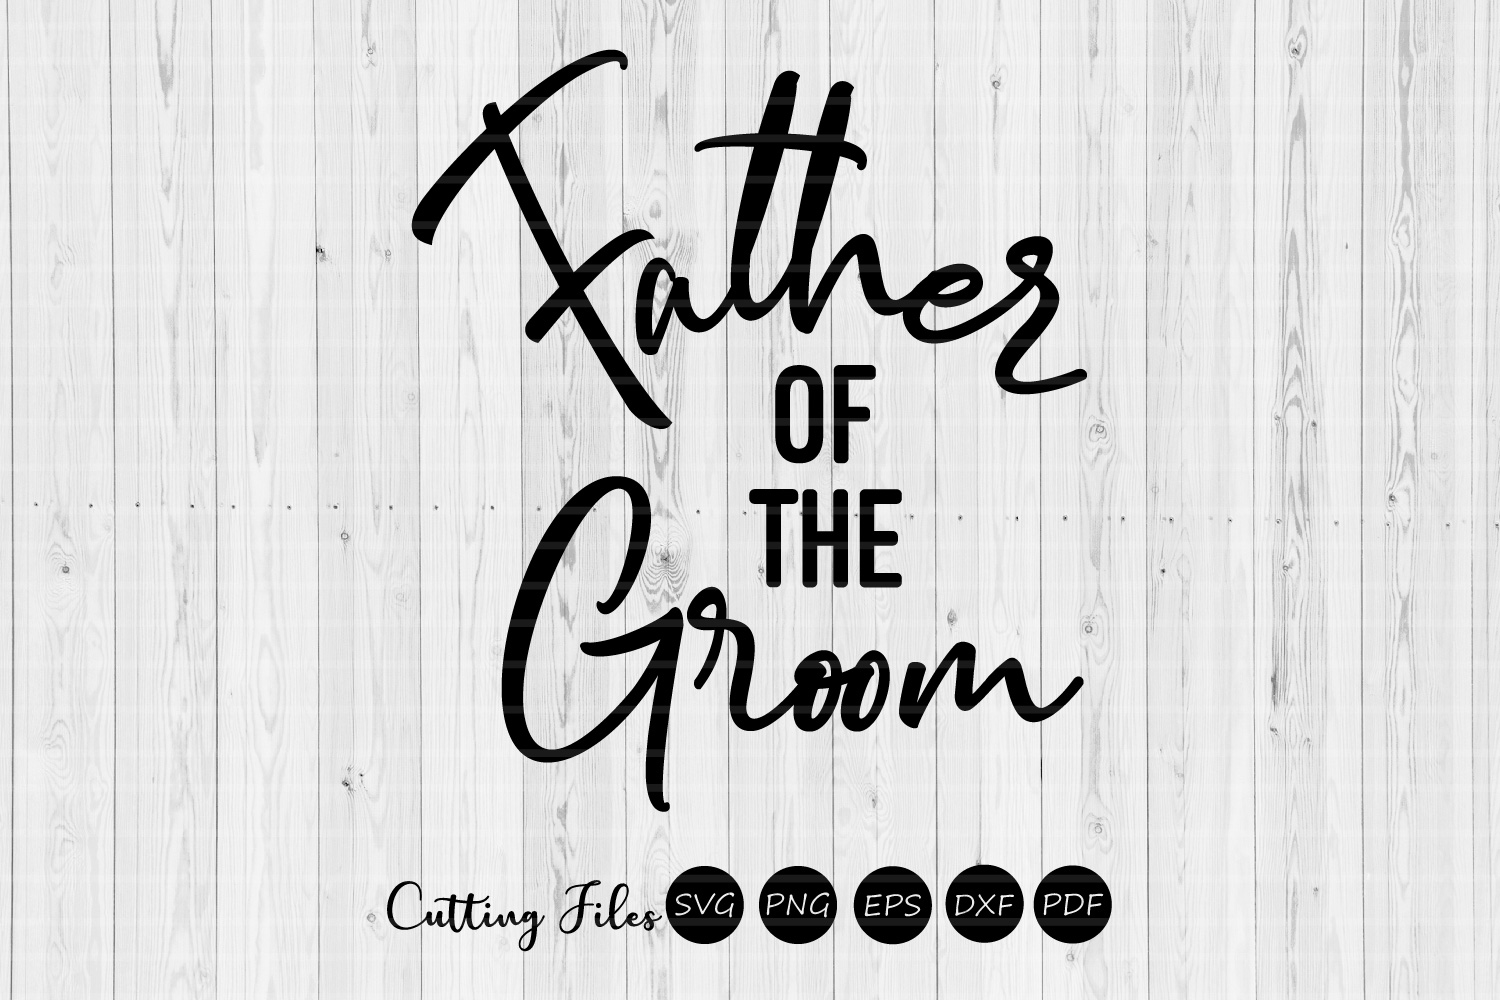 Father Of The Groom Wedding Svg Graphic By Hd Art Workshop